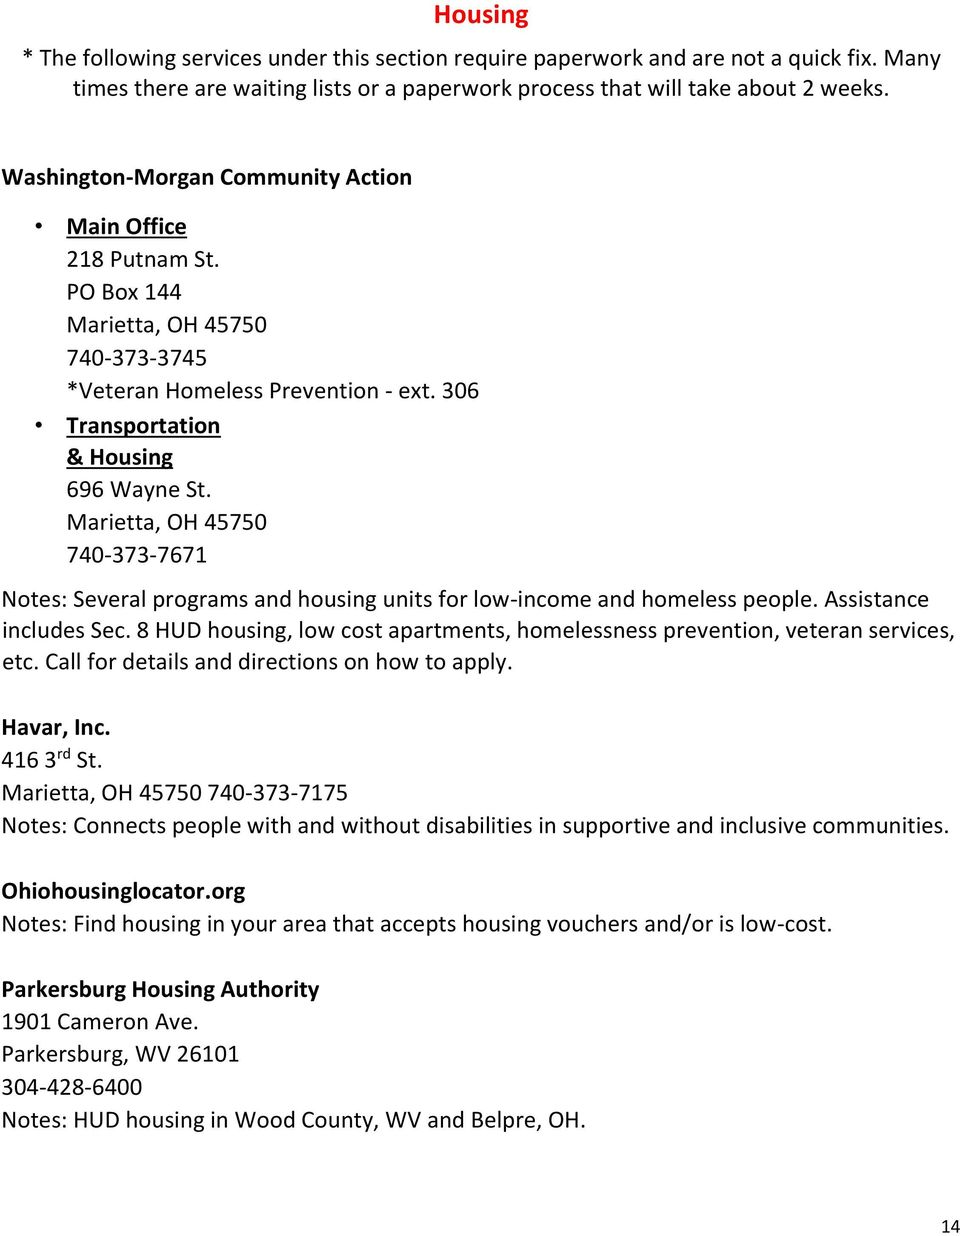 740-373-7671 Notes: Several programs and housing units for low-income and homeless people. Assistance includes Sec. 8 HUD housing, low cost apartments, homelessness prevention, veteran services, etc.